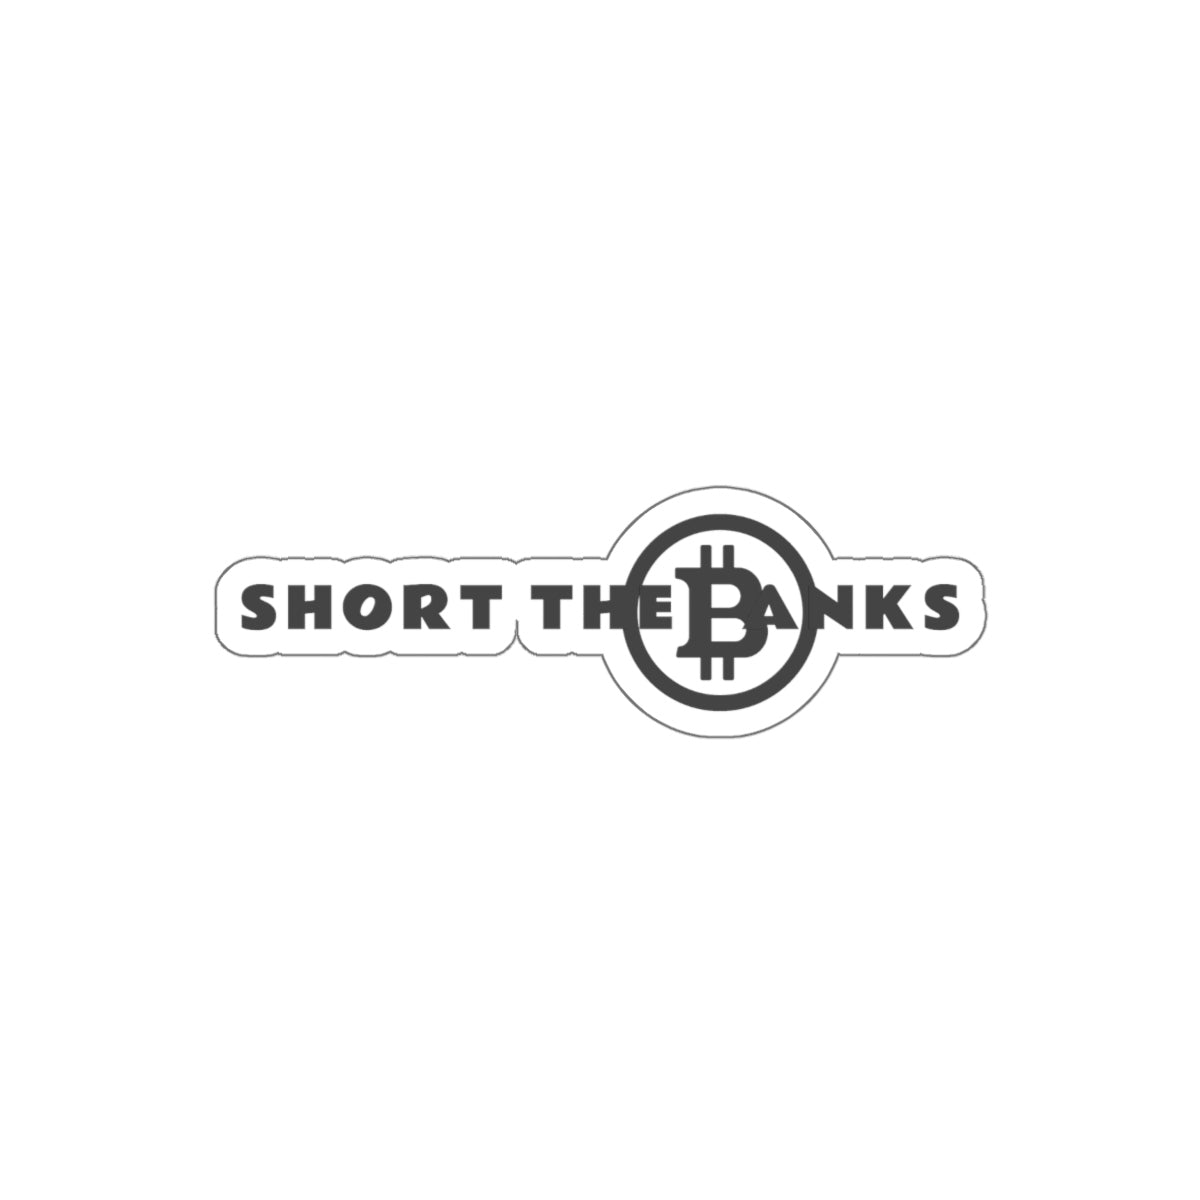 Short The Banks Kiss-Cut Stickers